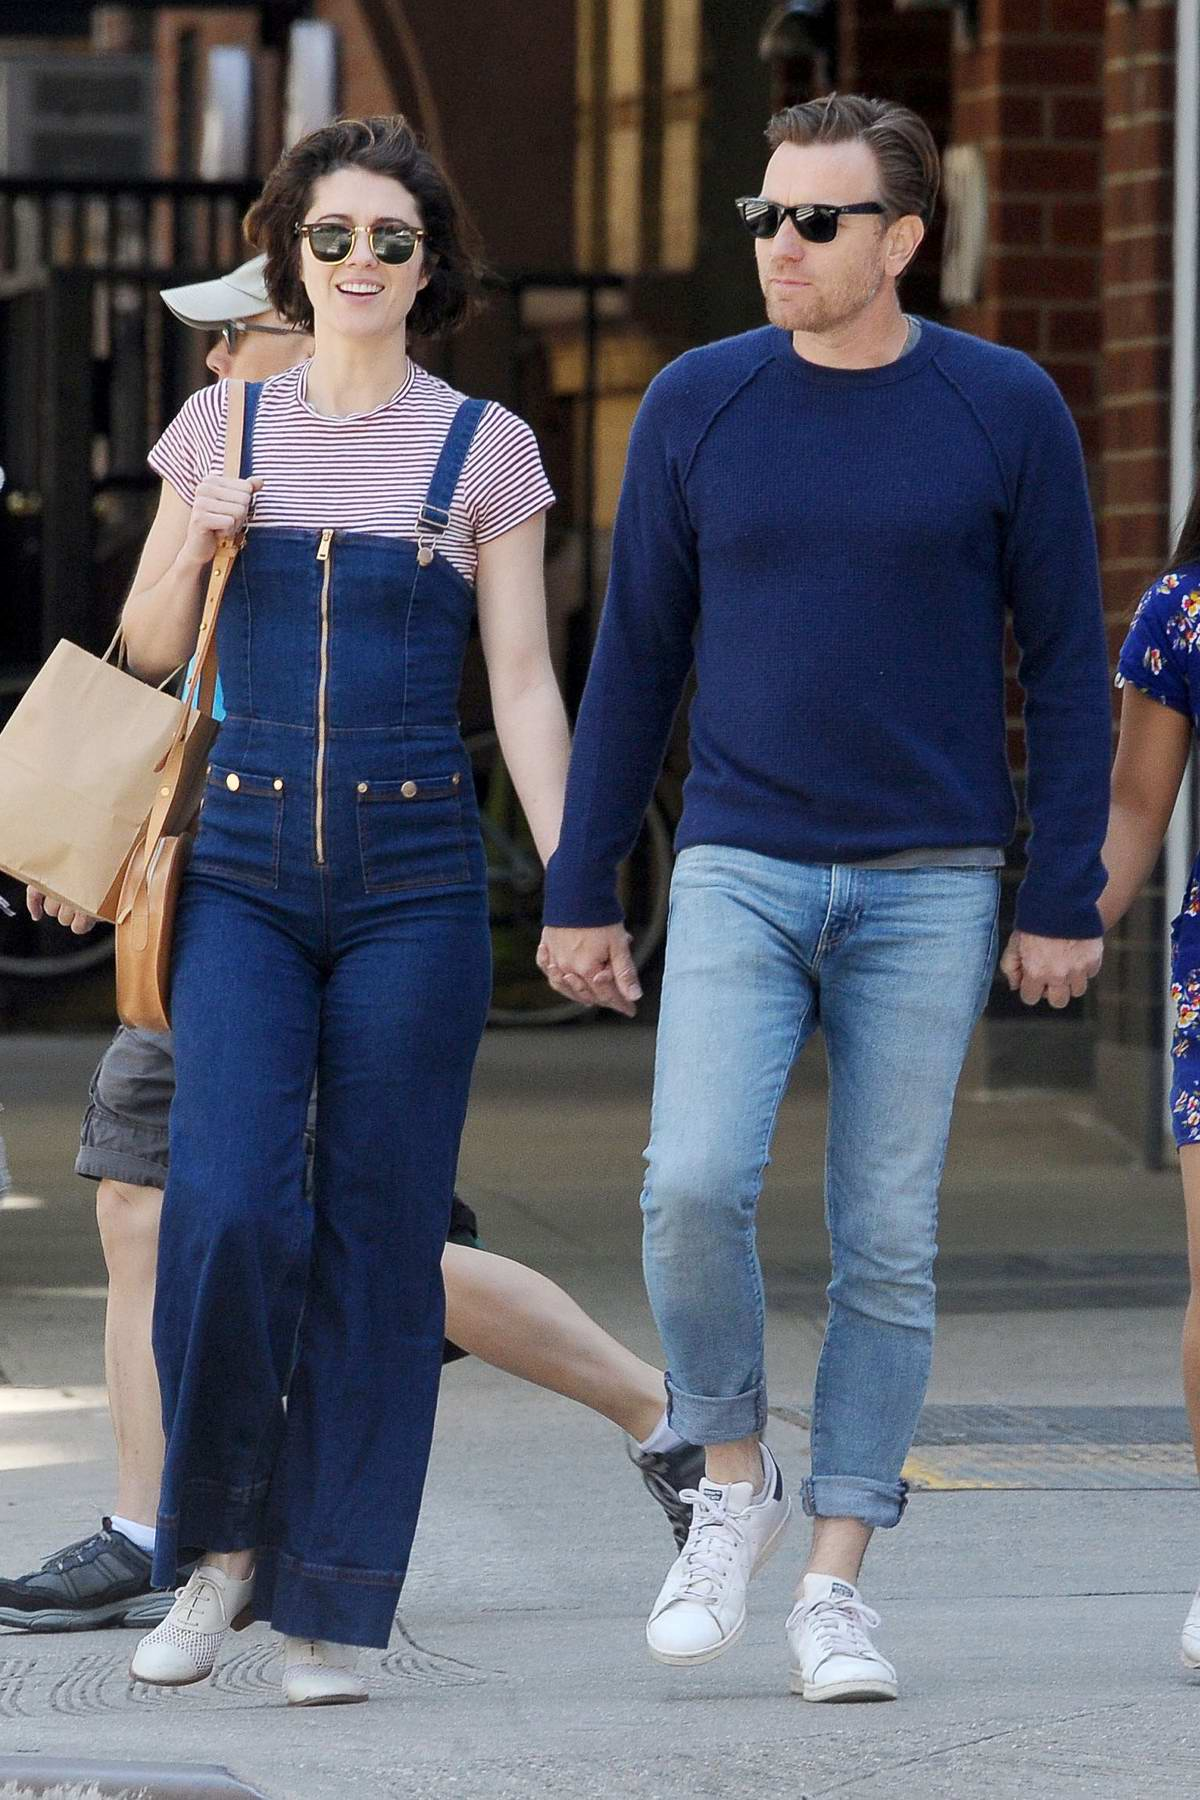 Mary Elizabeth Winstead and Ewan McGregor hold hands while on a stroll in New York City